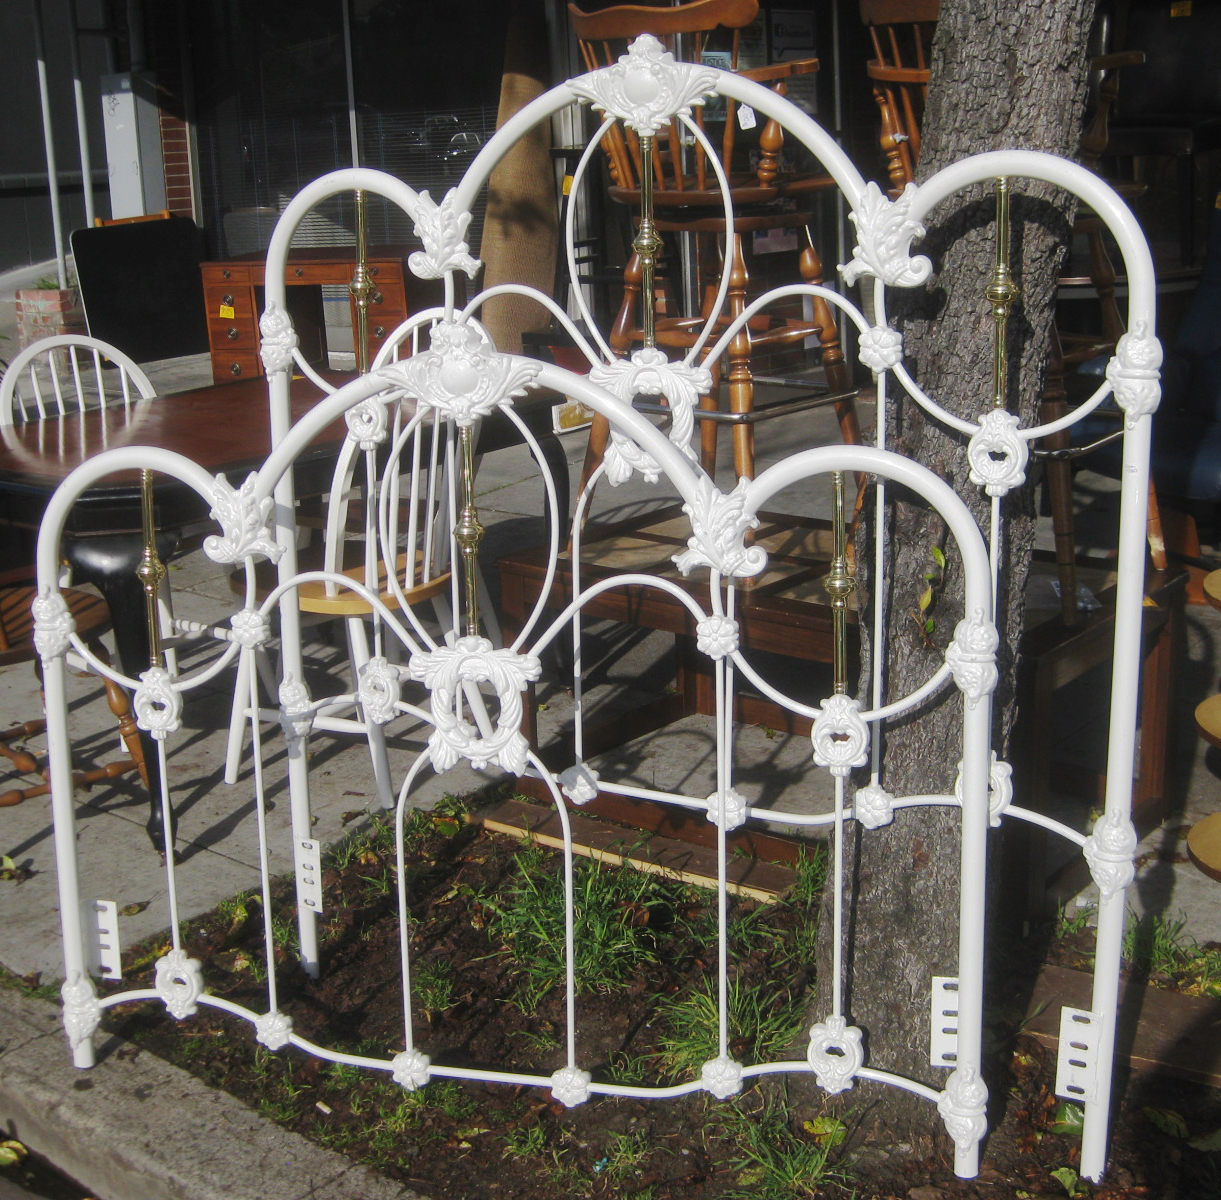 Uhuru Furniture Amp Collectibles Sold Queen Iron Bed